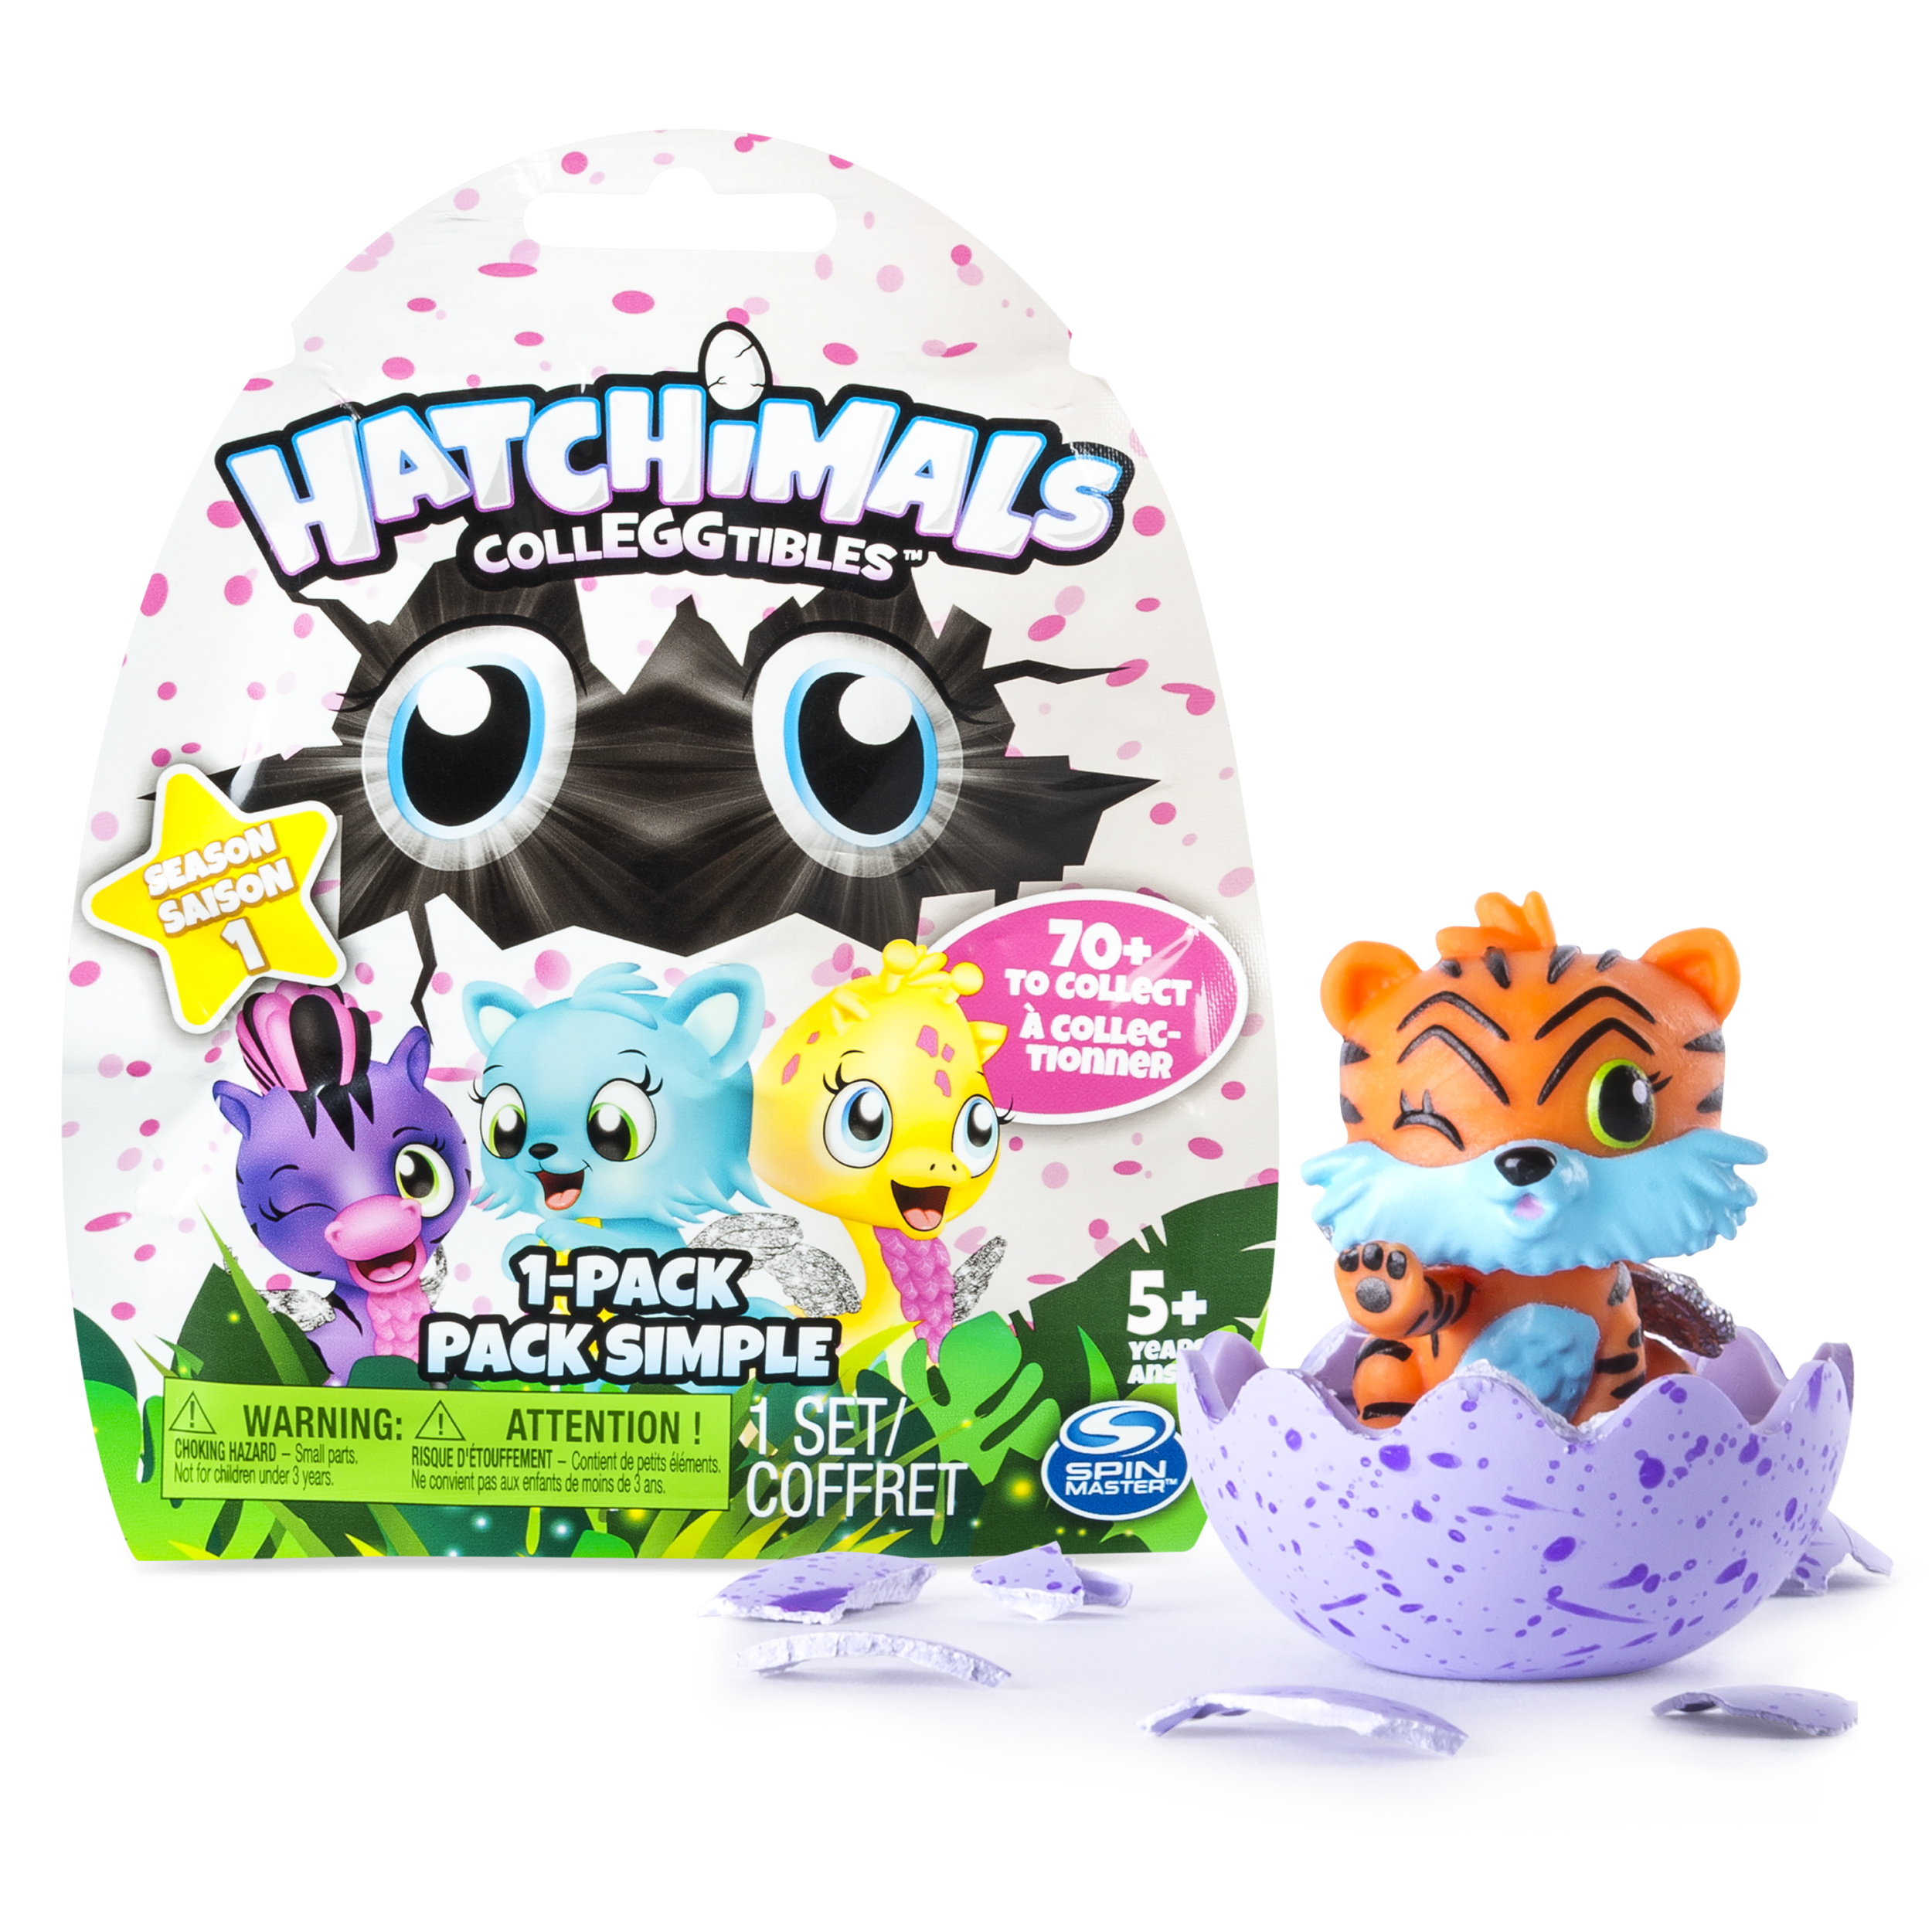 Hatchimals, CollEGGtibles, 1 Pack (Styles & Colors May Vary) by Spin Master